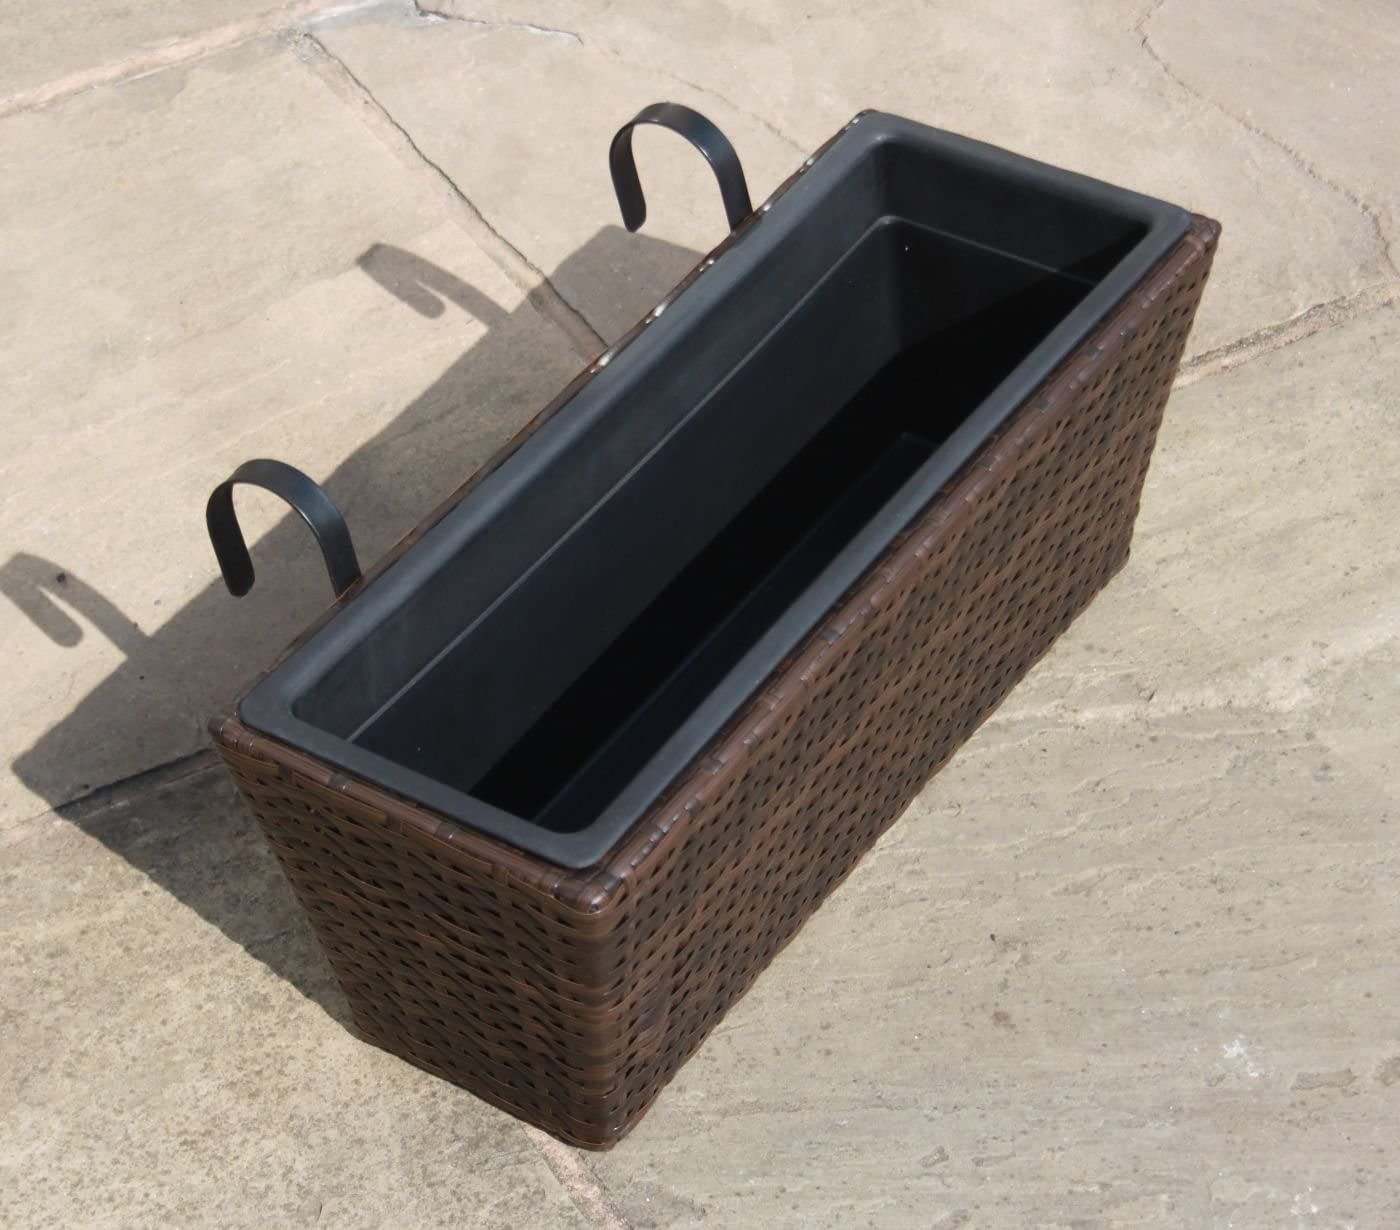 Anthracite Finish Gartenfreude 4000-1009-001 80 19 xcm Resin Wicker Balcony Box with Watering System includes Mounting